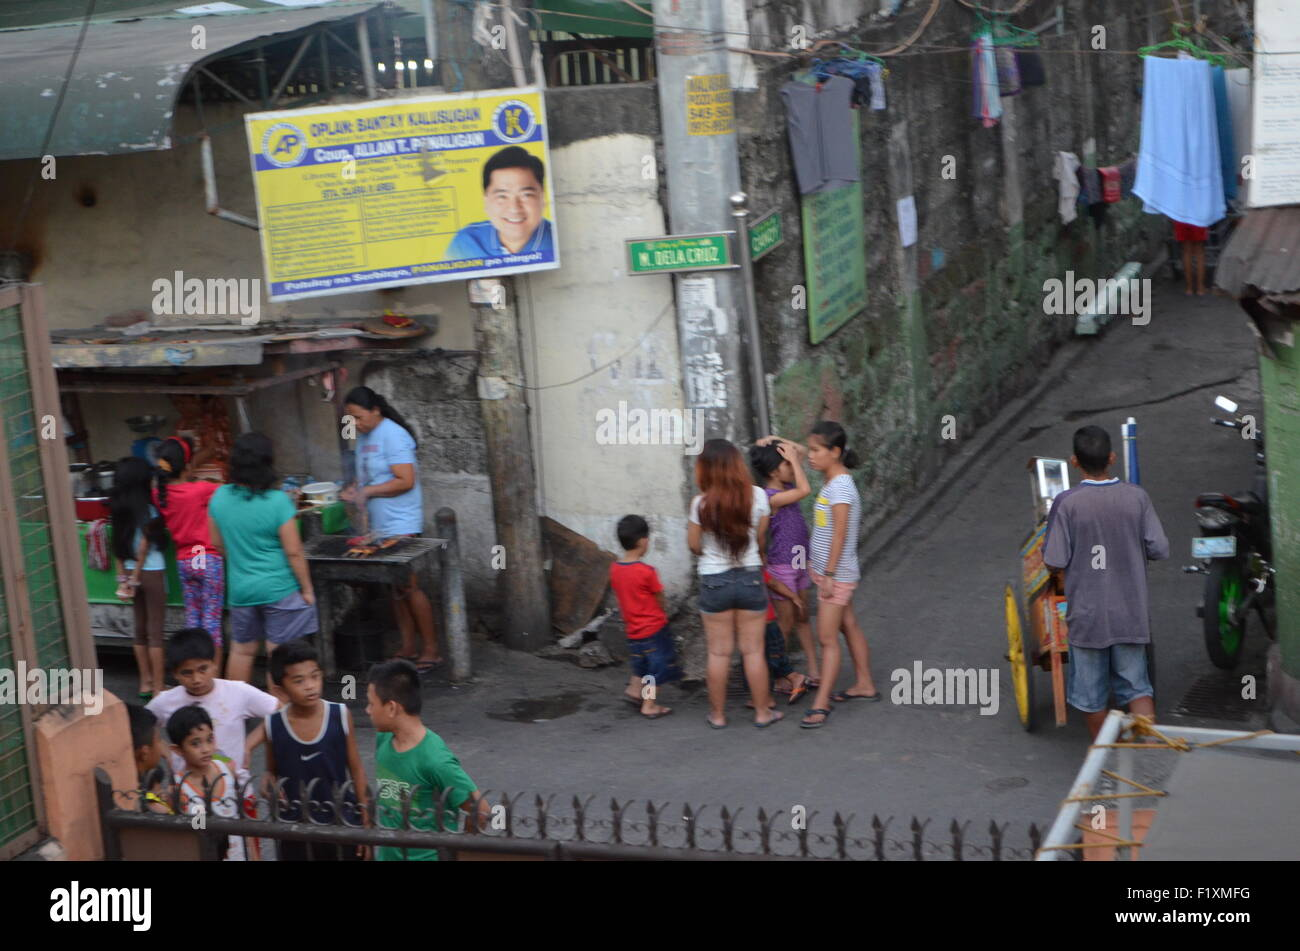 M.Dela Cruz, Manila.A streetcorner wherecrowds gather totaste thesausages being warmed upfor them.Above themthe - Stock Image